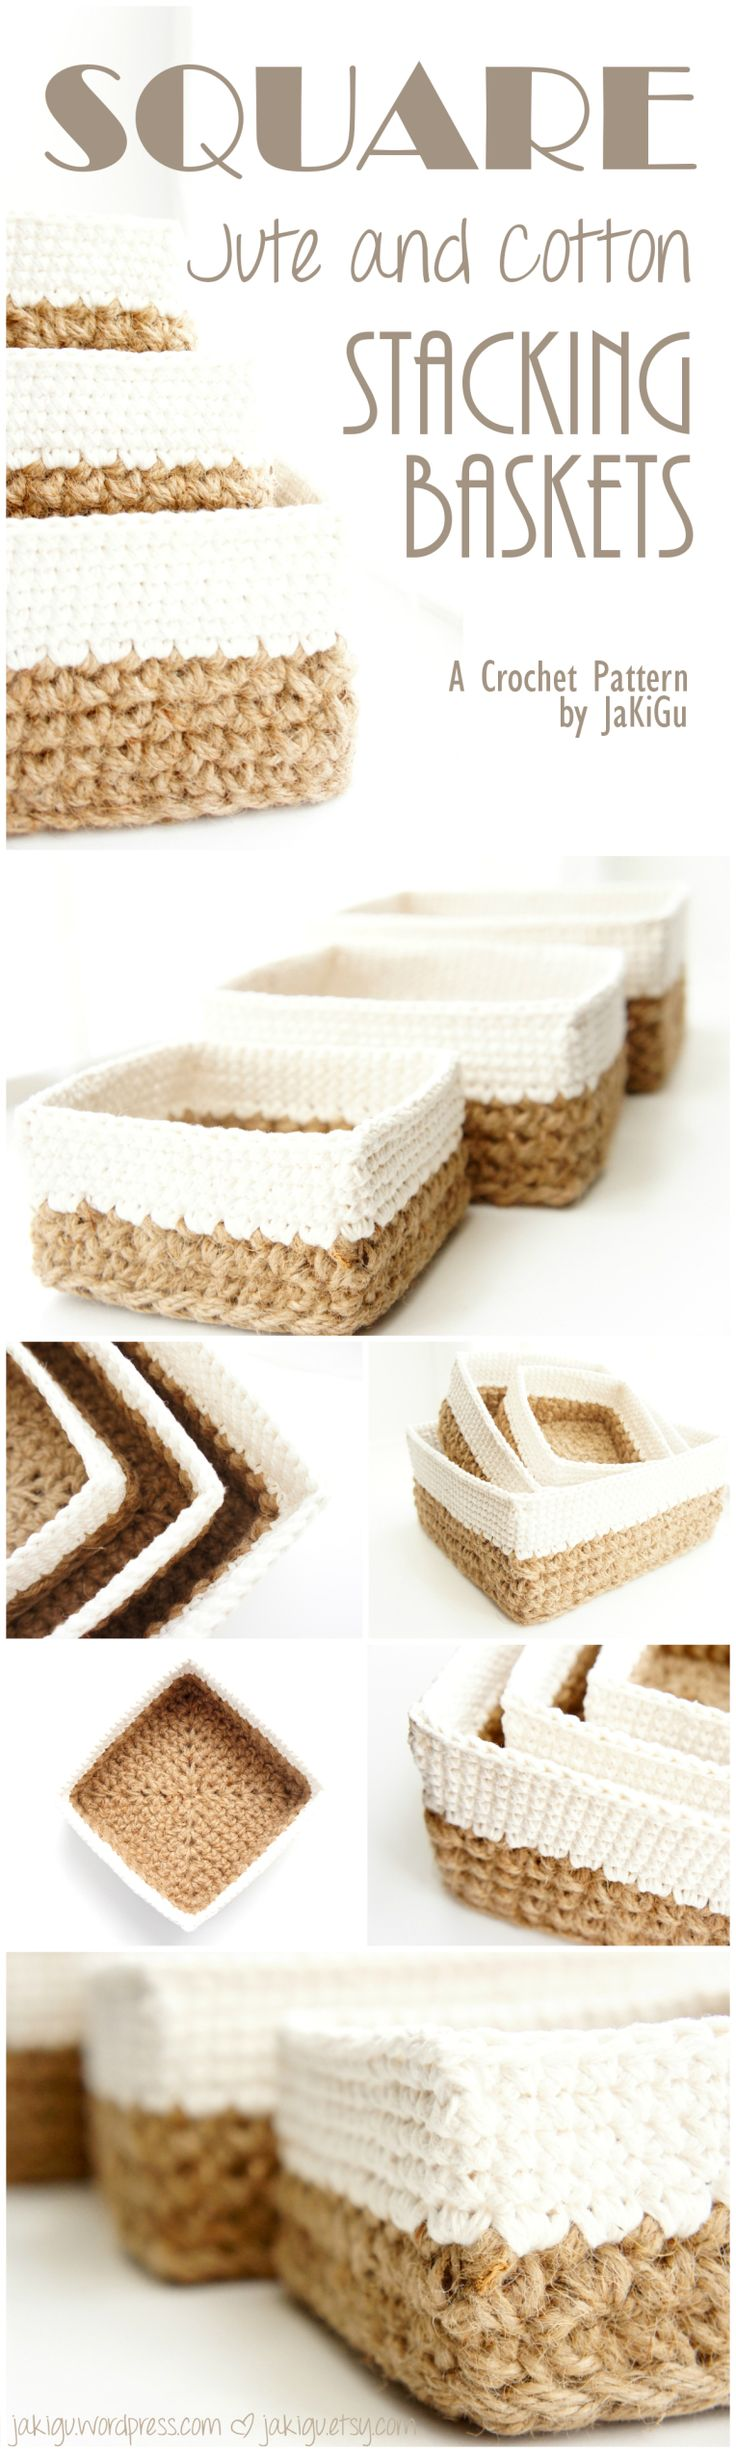 Crochet Pattern: Square Jute and Cotton Stacking Baskets by JaKiGu